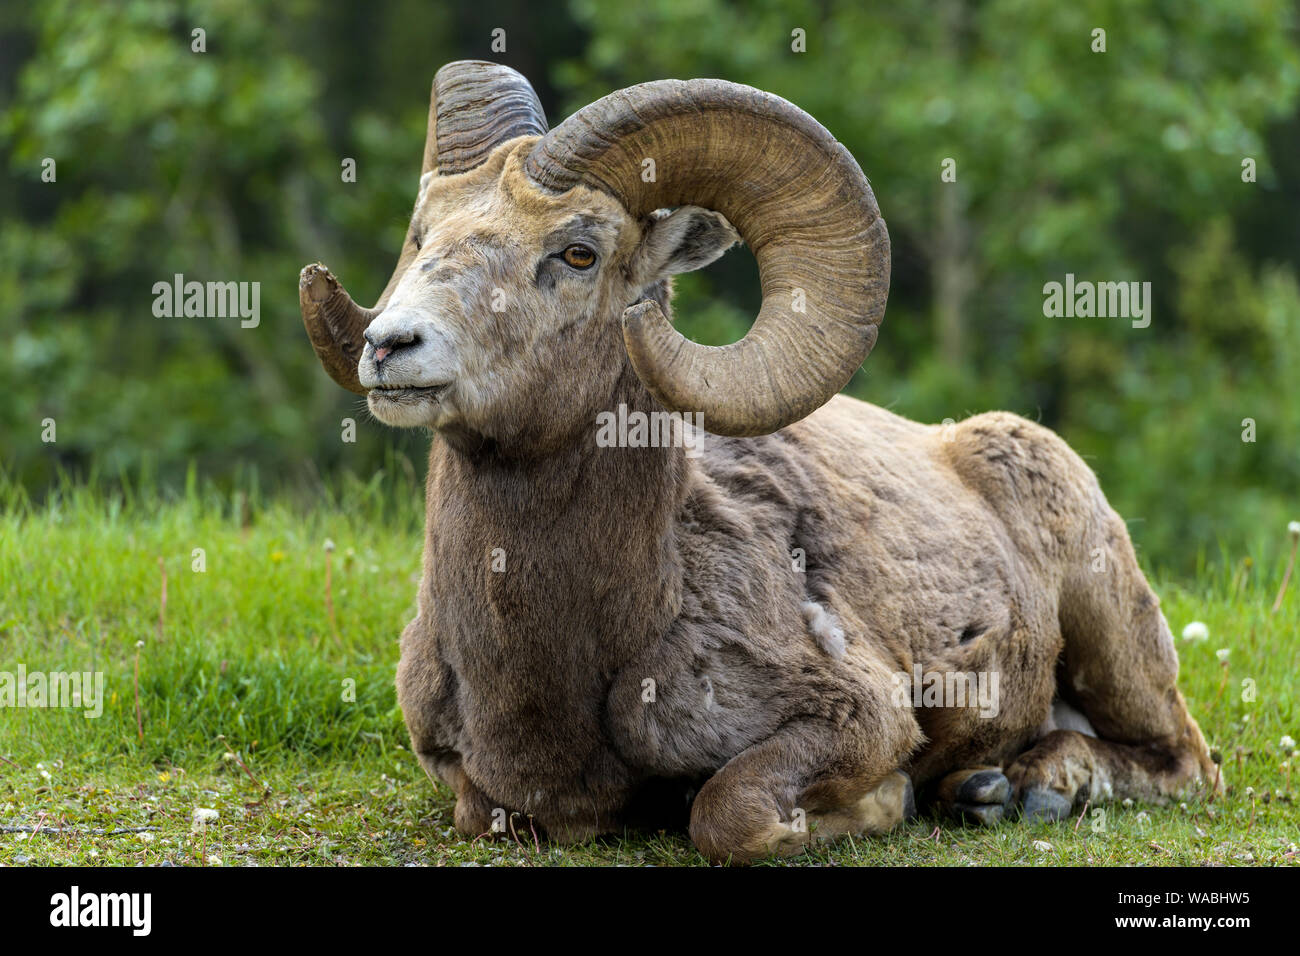 Bighorn Ram - Close-up front view of a bighorn sheep ram resting on a meadow at edge of a mountain forest near Two Jack Lake, Banff National Park. Stock Photo